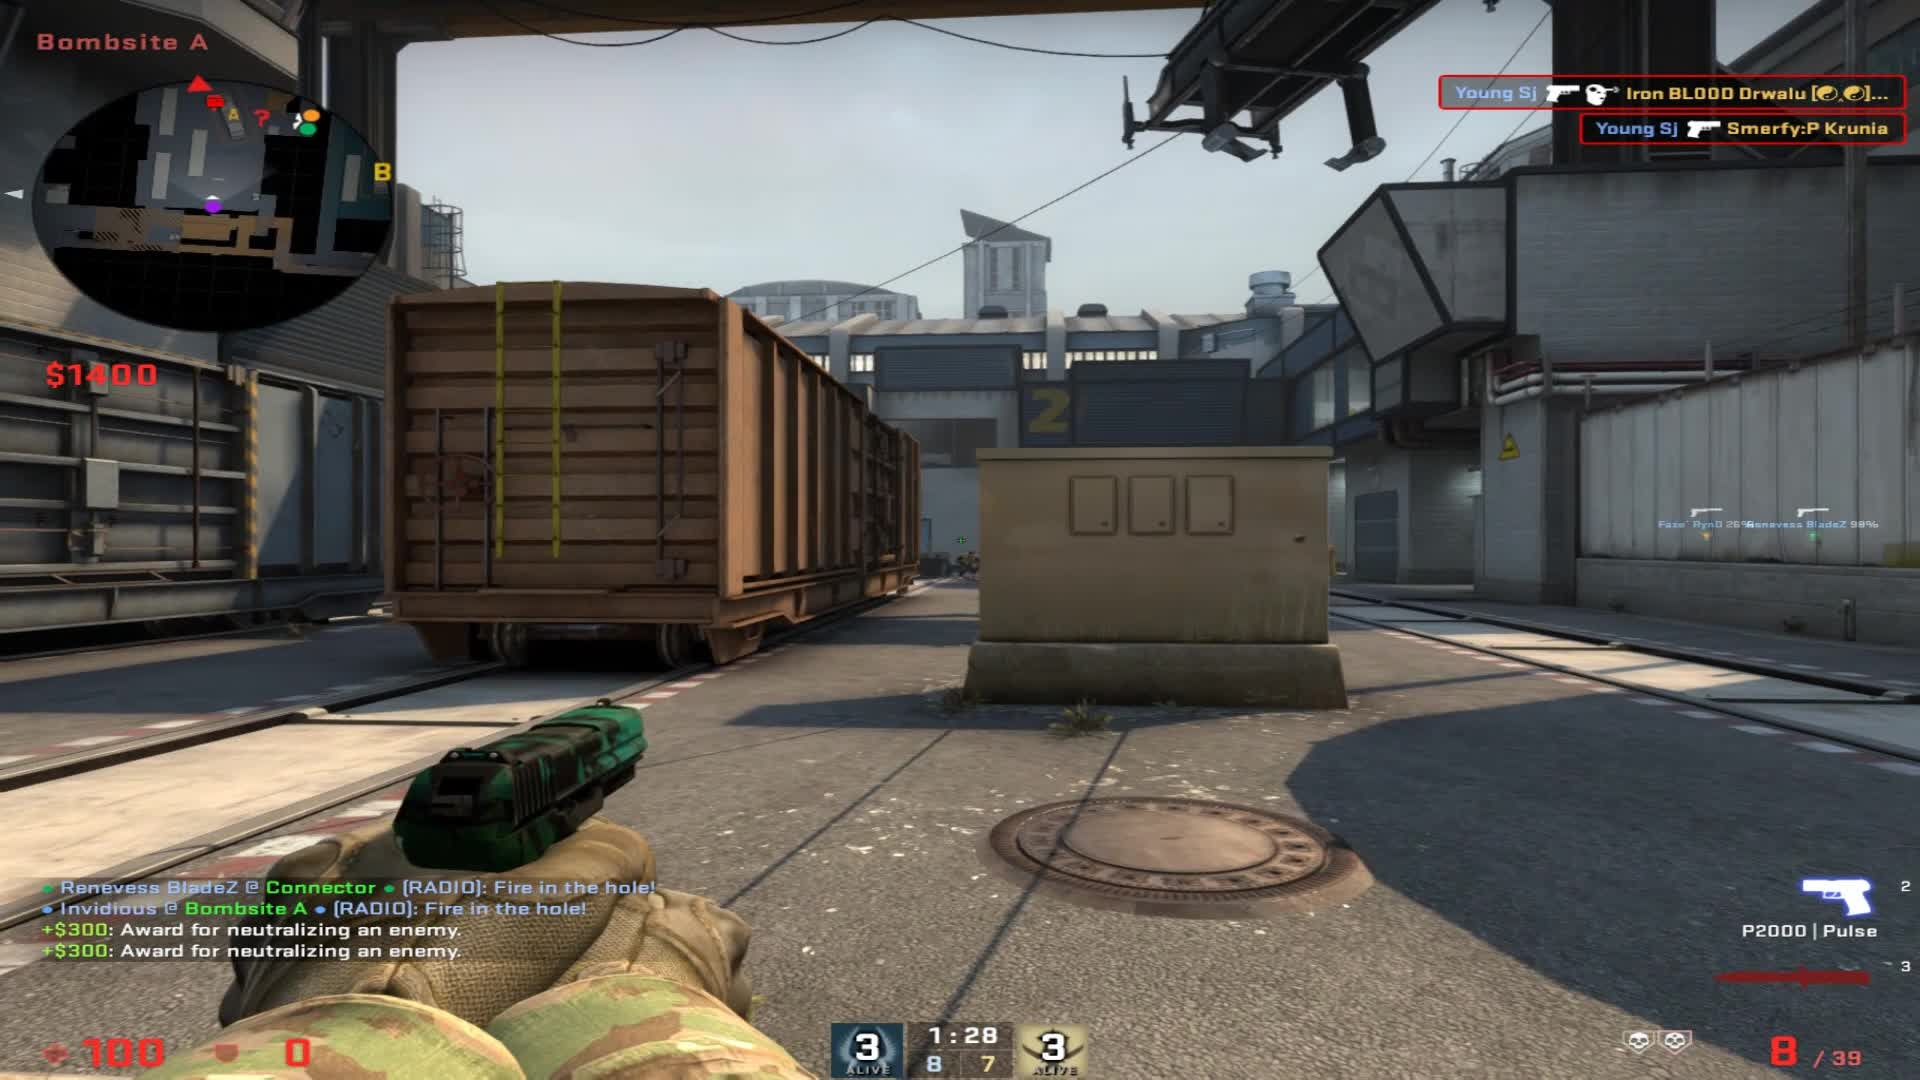 CSGO: General - Ace! video cover image 0